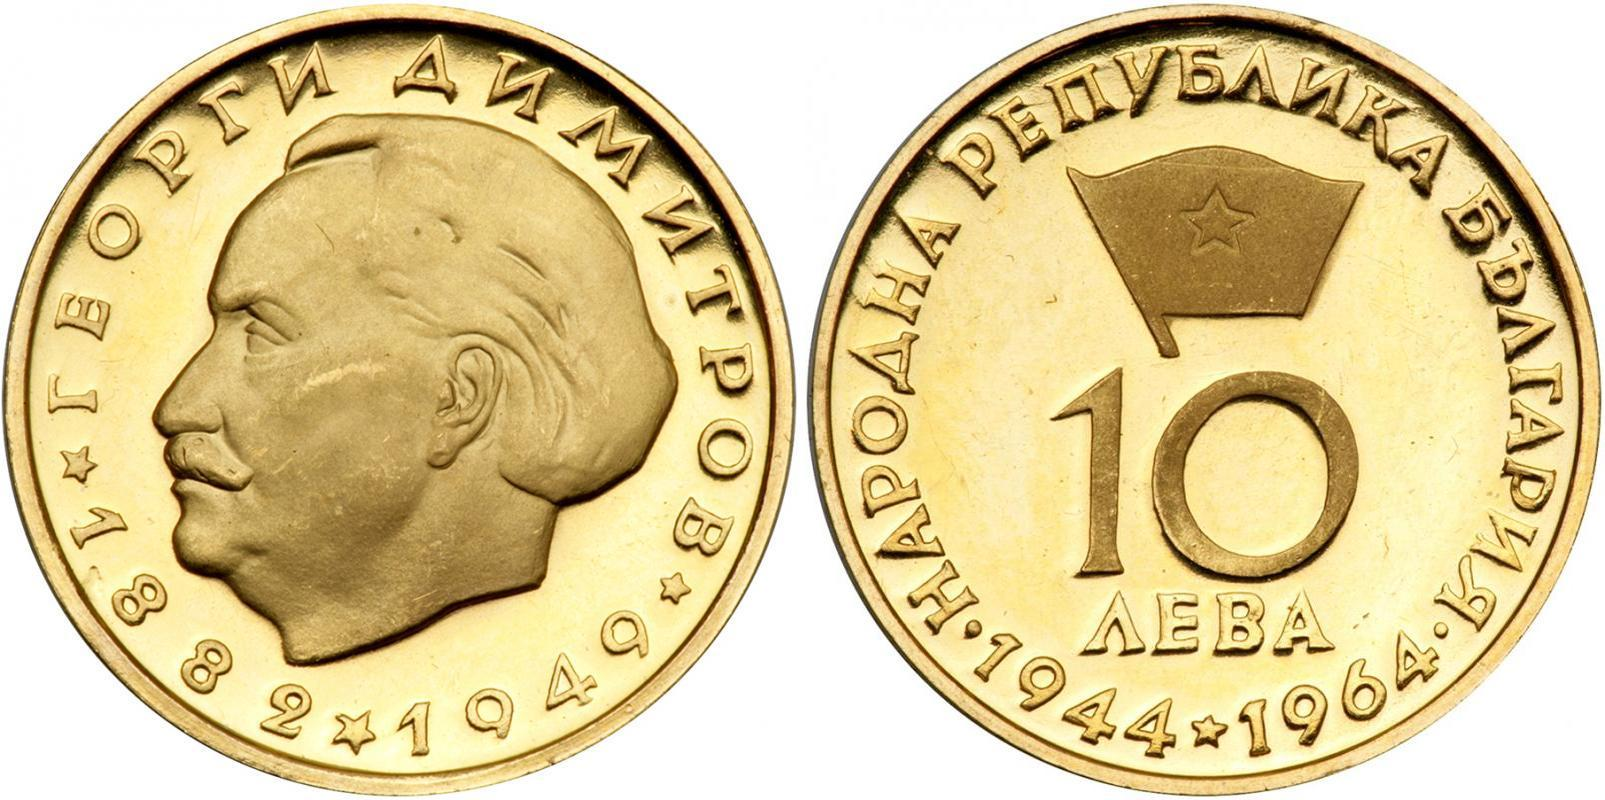 10 Lev 1964 Bulgaria Gold | Prices & Values KM-71